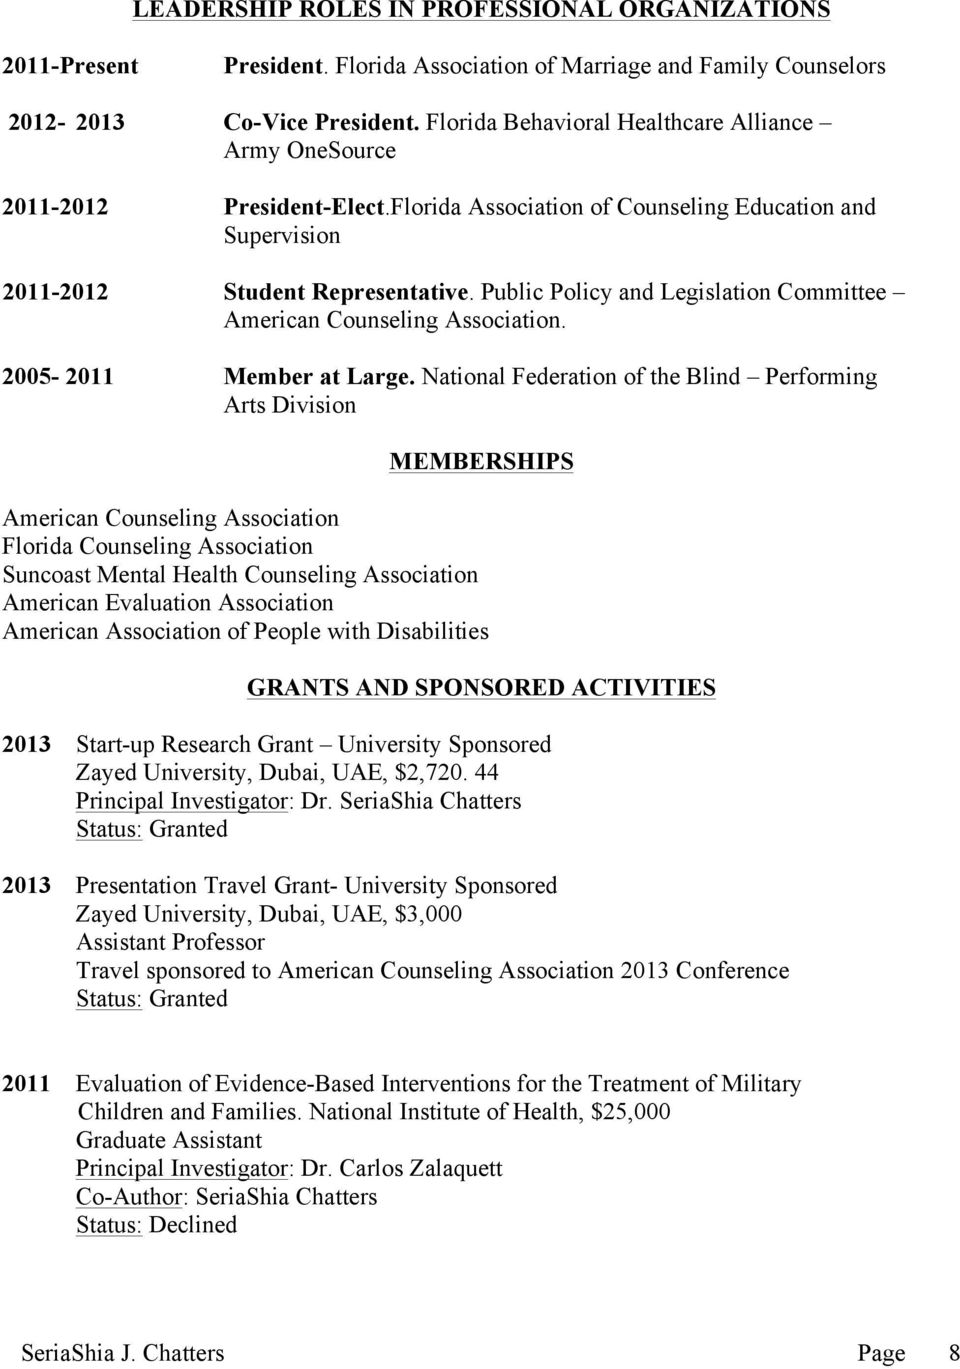 Public Policy and Legislation Committee American Counseling Association. 2005-2011 Member at Large.